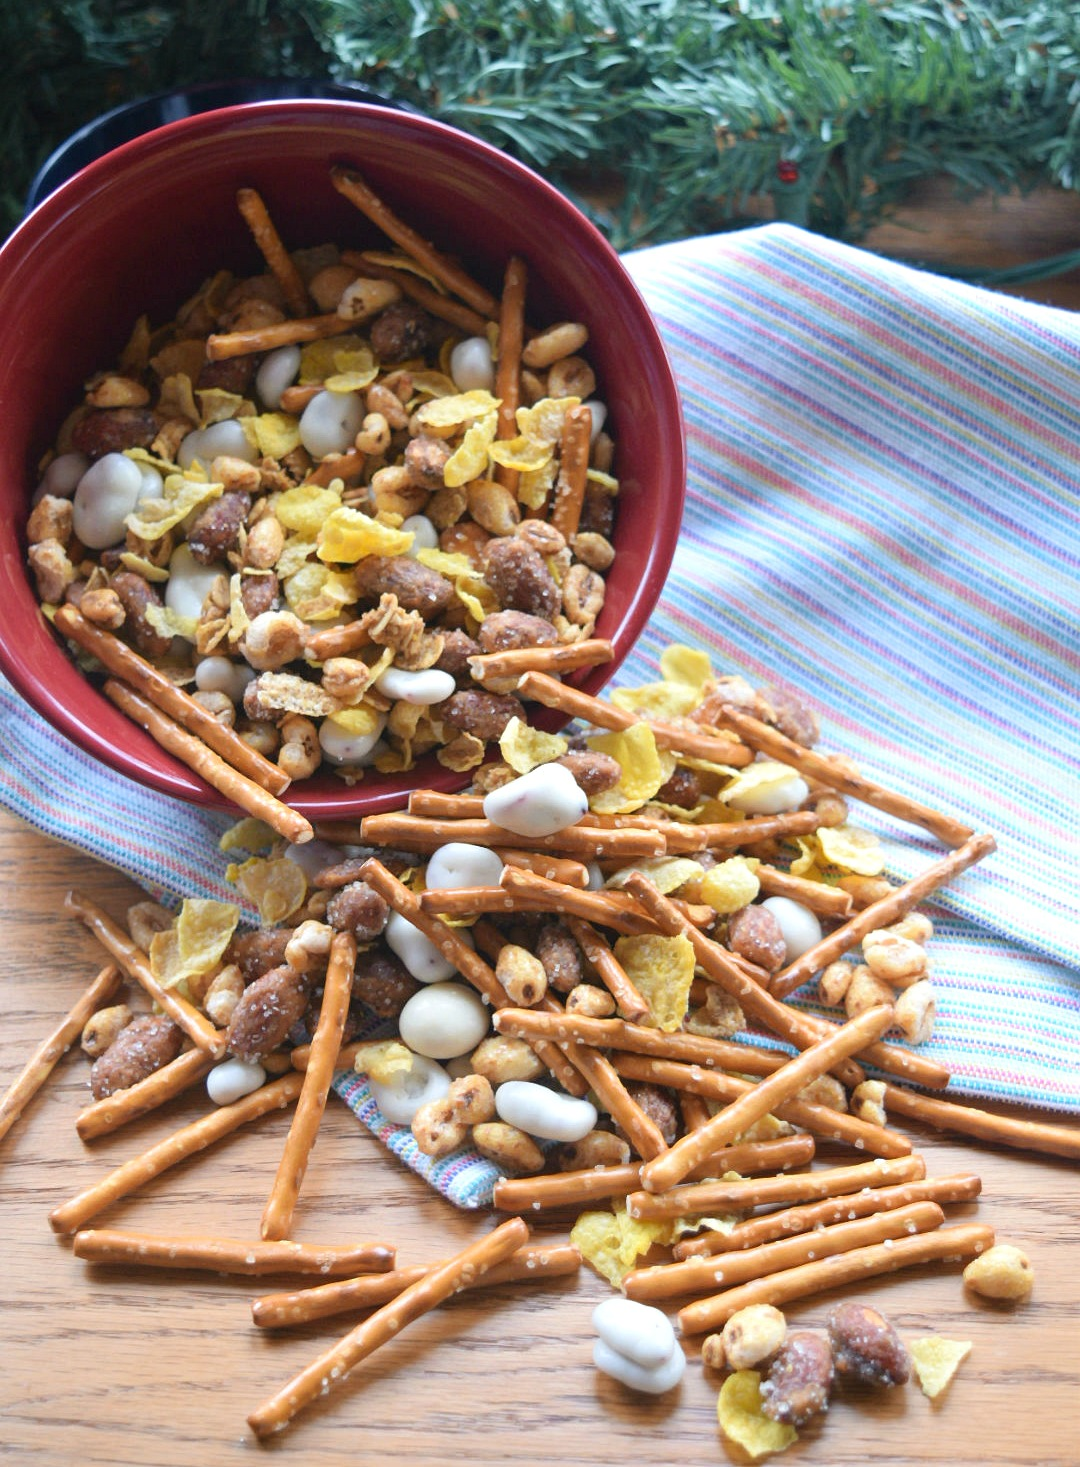 a bowlful of crunchy cereal mix